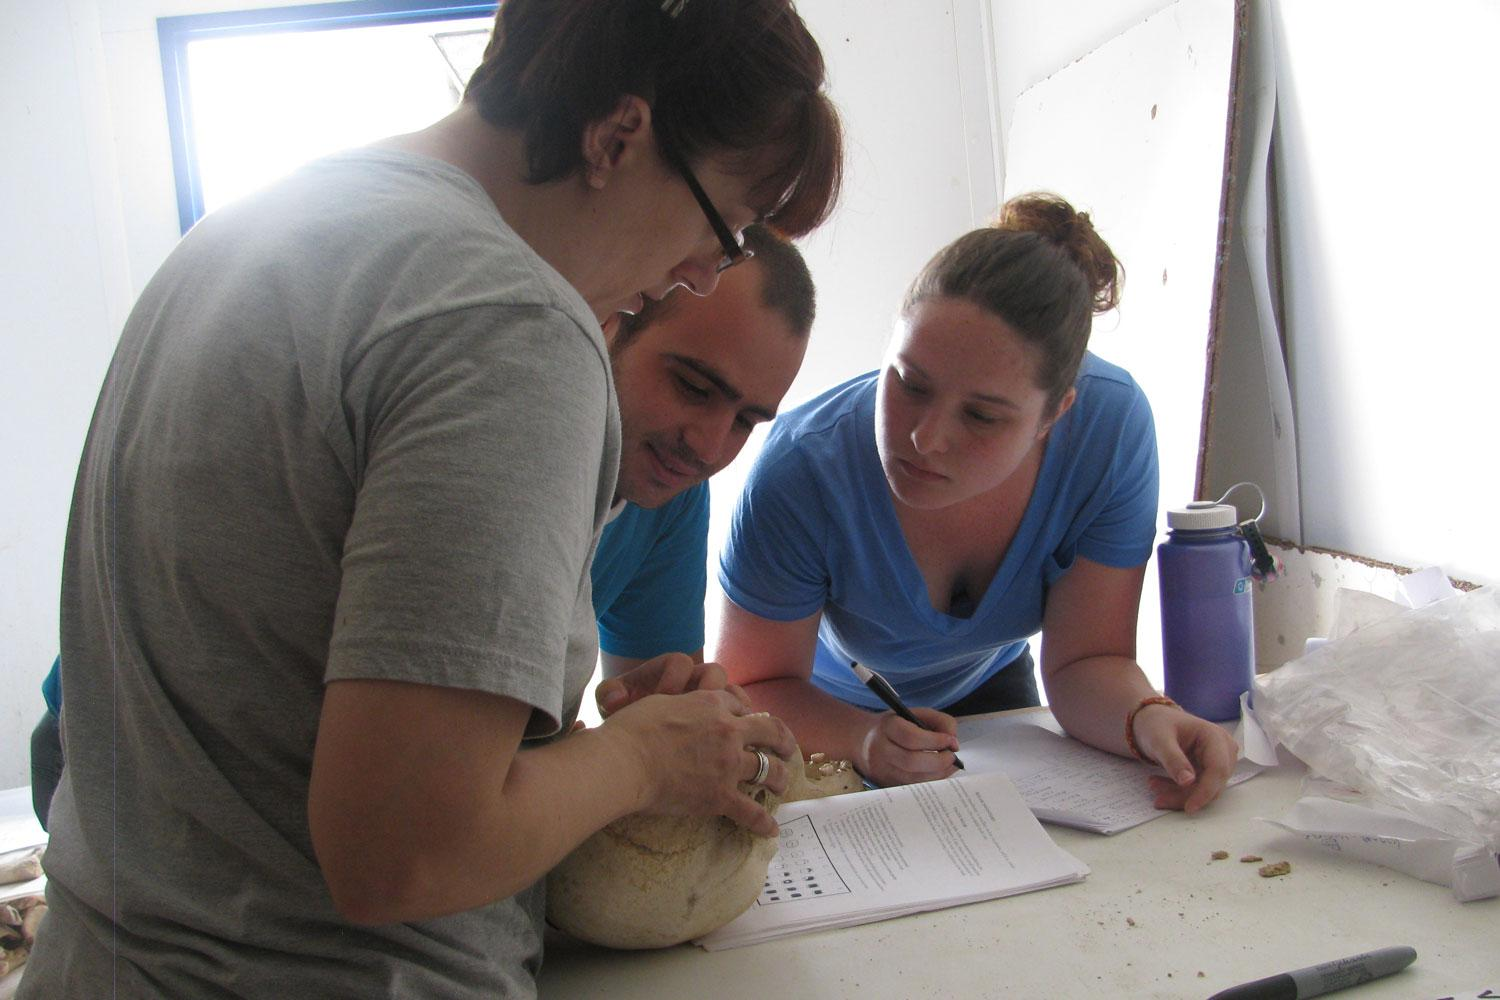 UNC students Jennifer Wright and Katelyn McEachern work with Albanian student Marlon to analyze skeletons in Albania.